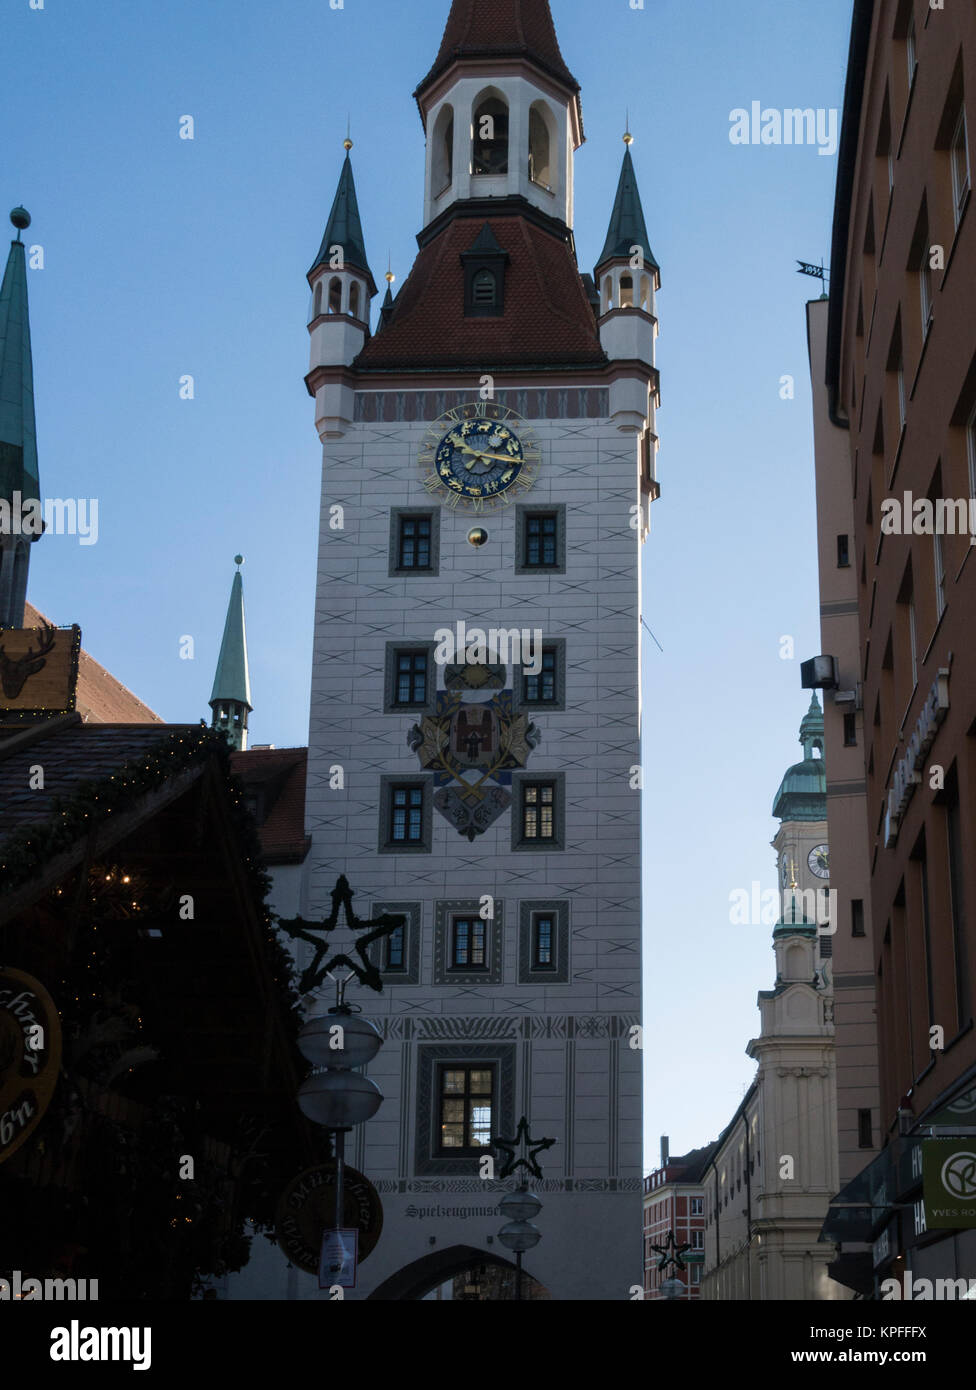 Spielzeugmuseum in south tower of  Altes Rathaus 1474 Toy Museum Marienplatz Munich Bavaria Germany EU - Stock Image